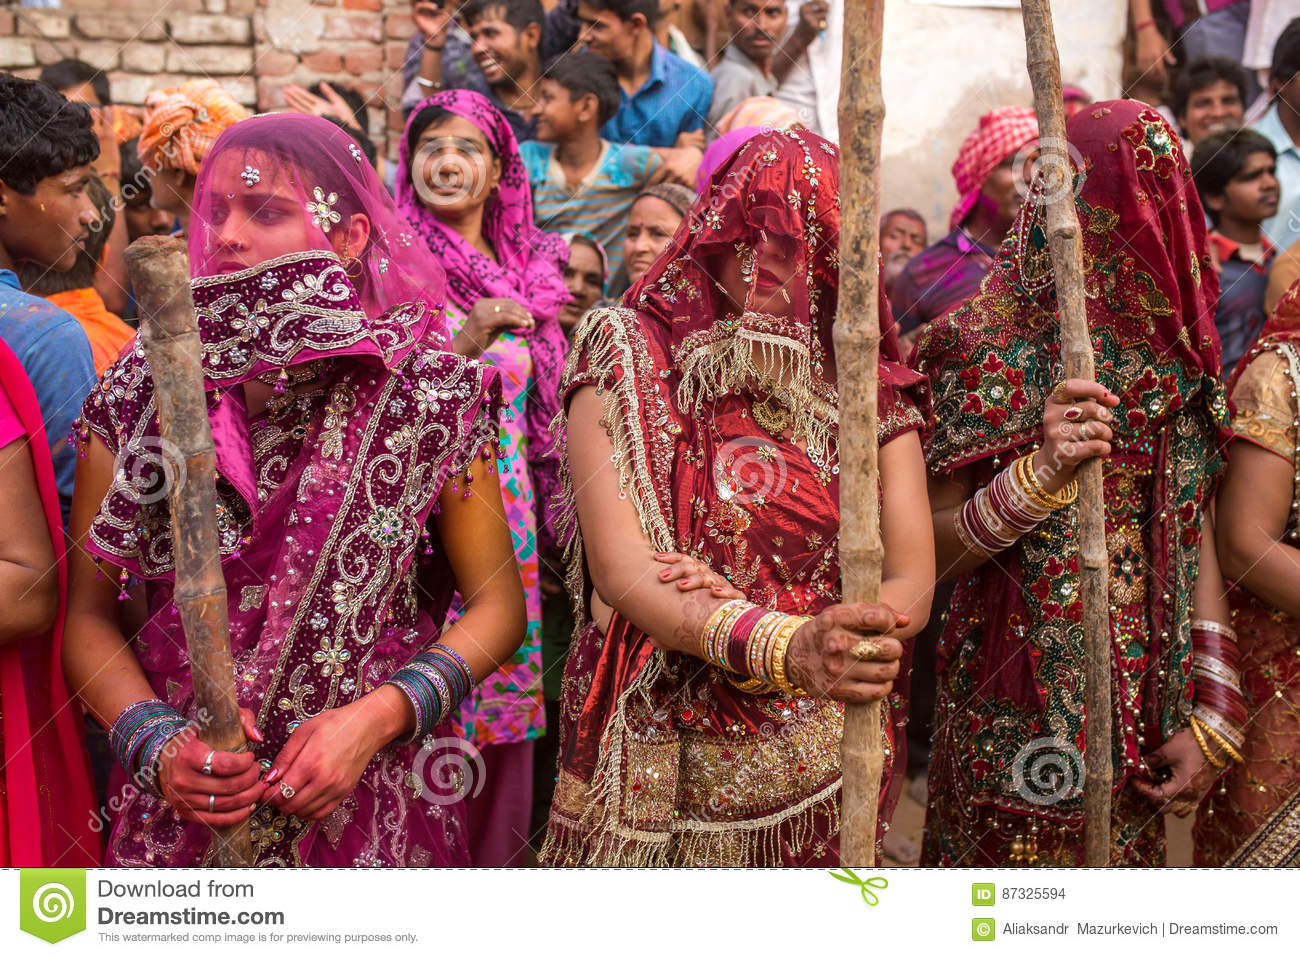 Women beat up men with long sticks as a ritual in the Lathmar Holi celebration in Nandgaon